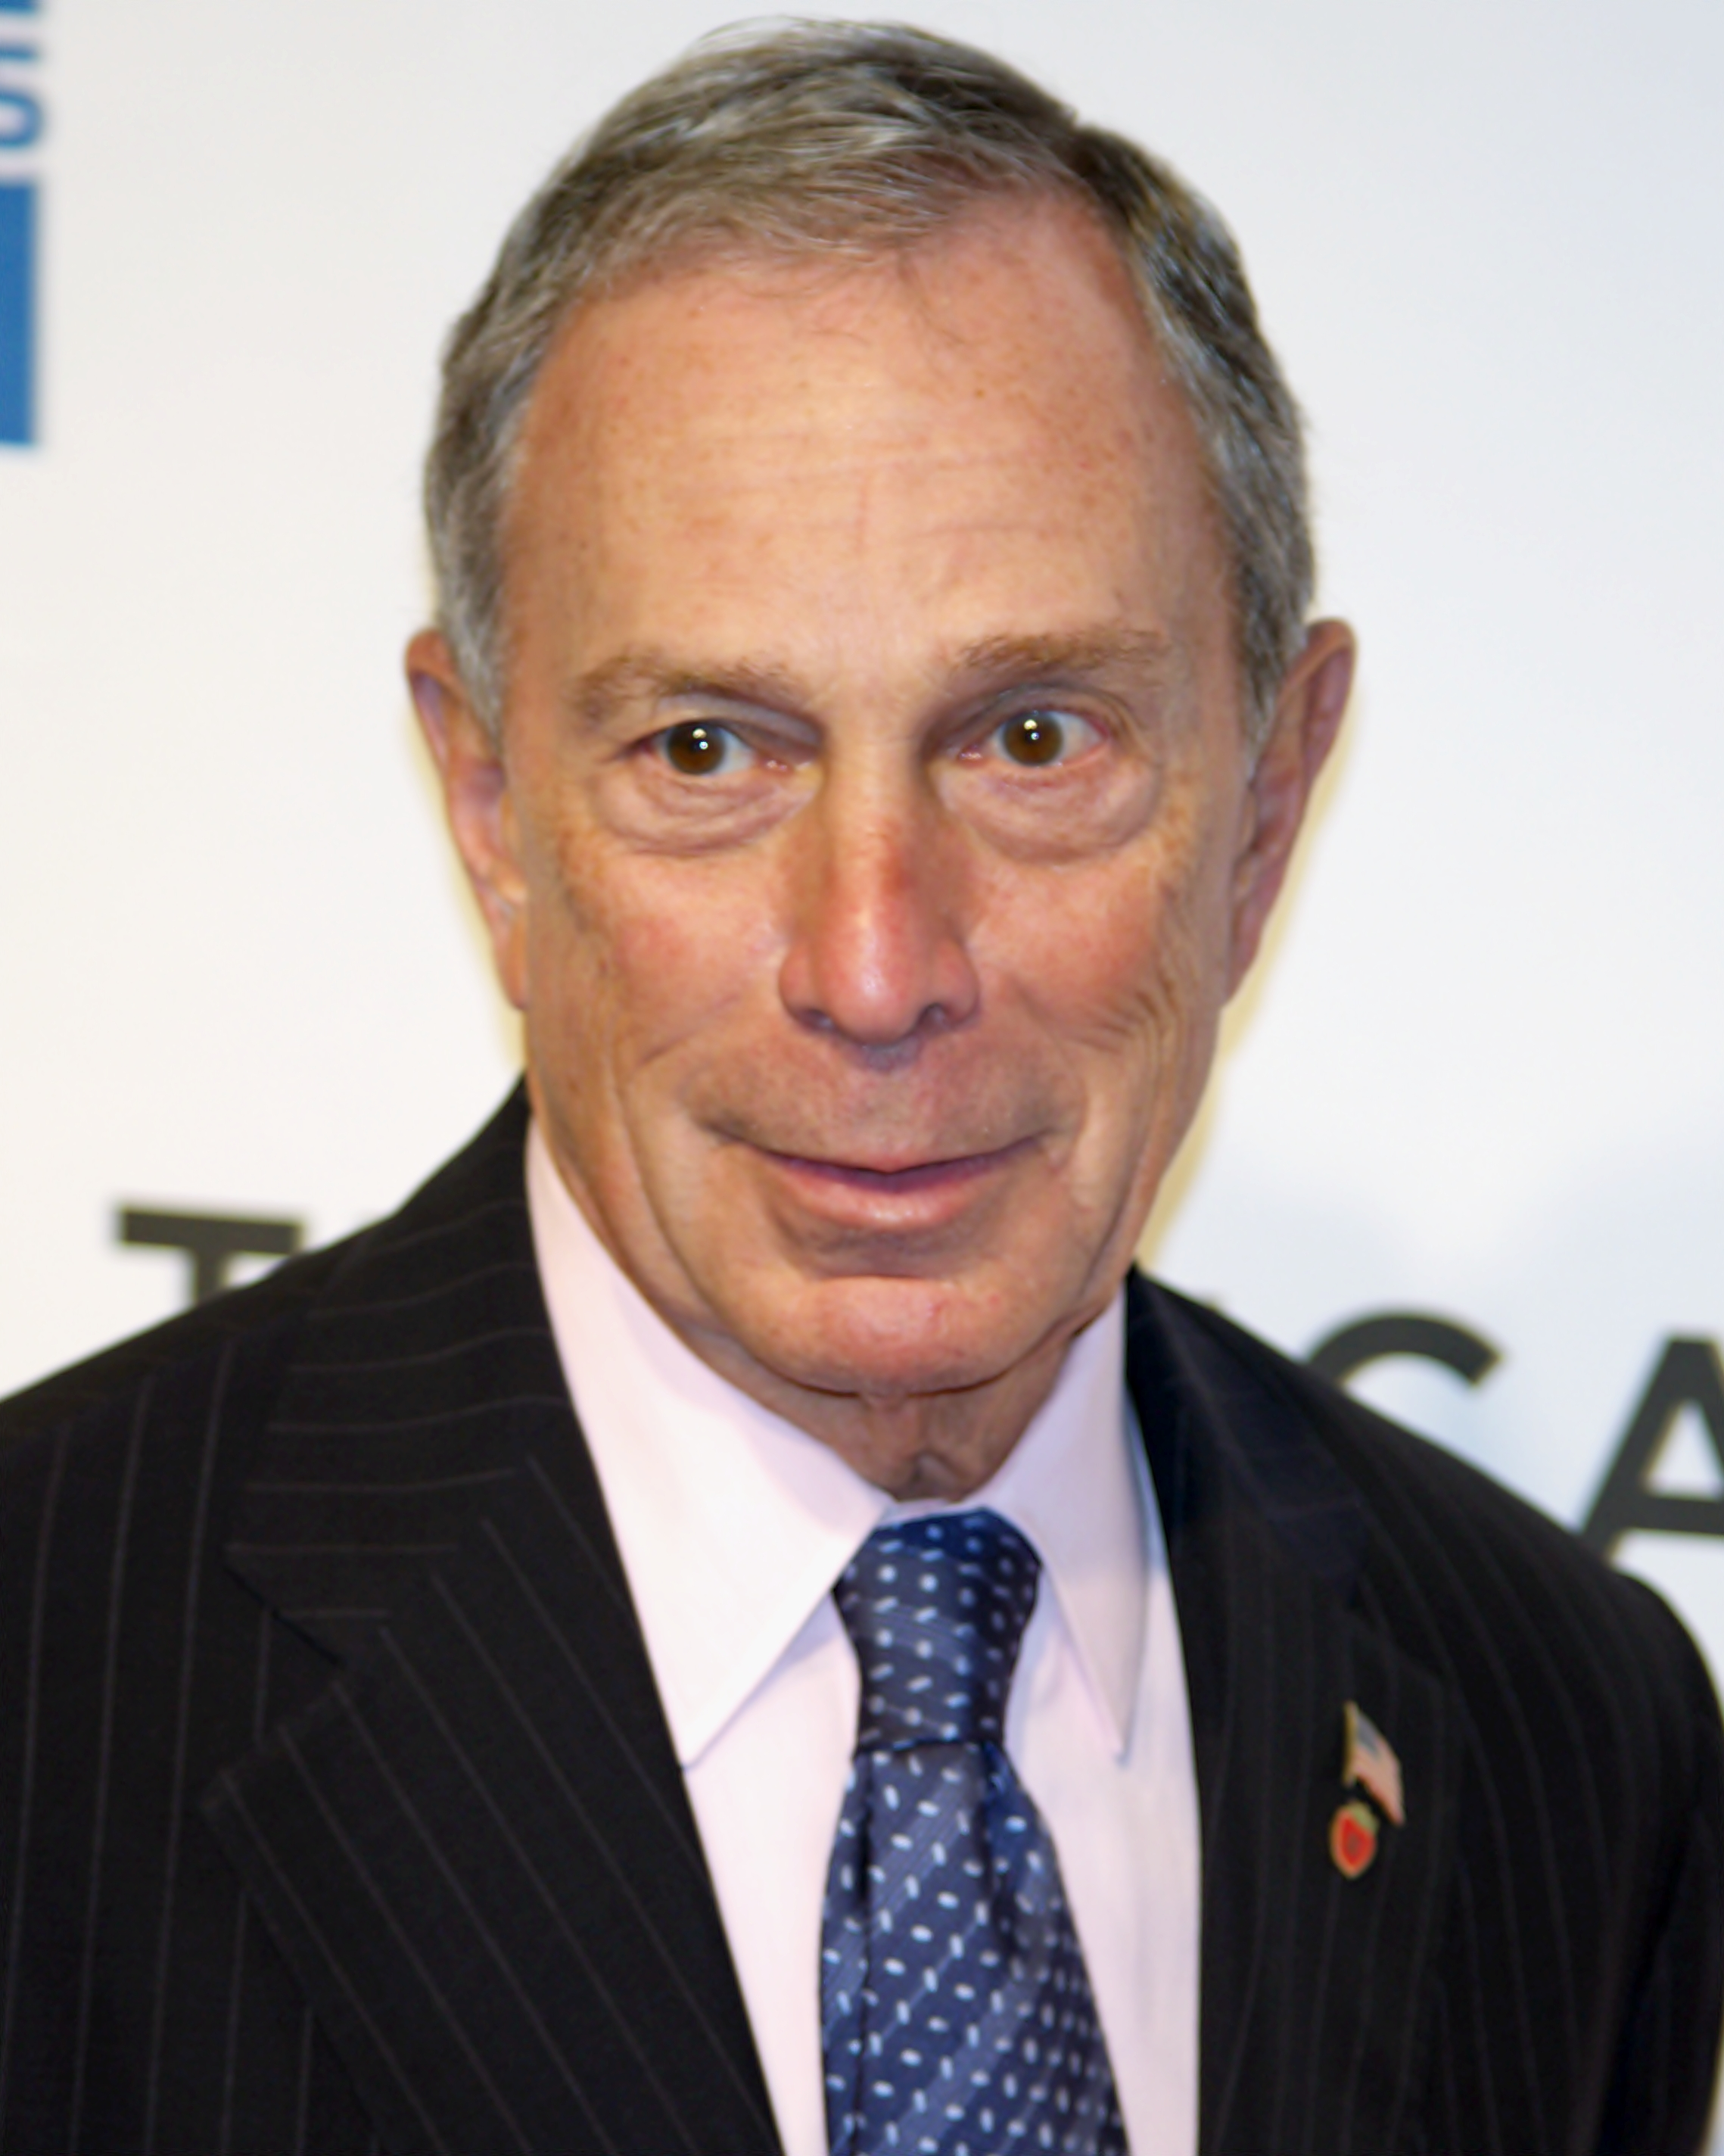 how tall is mike bloomberg